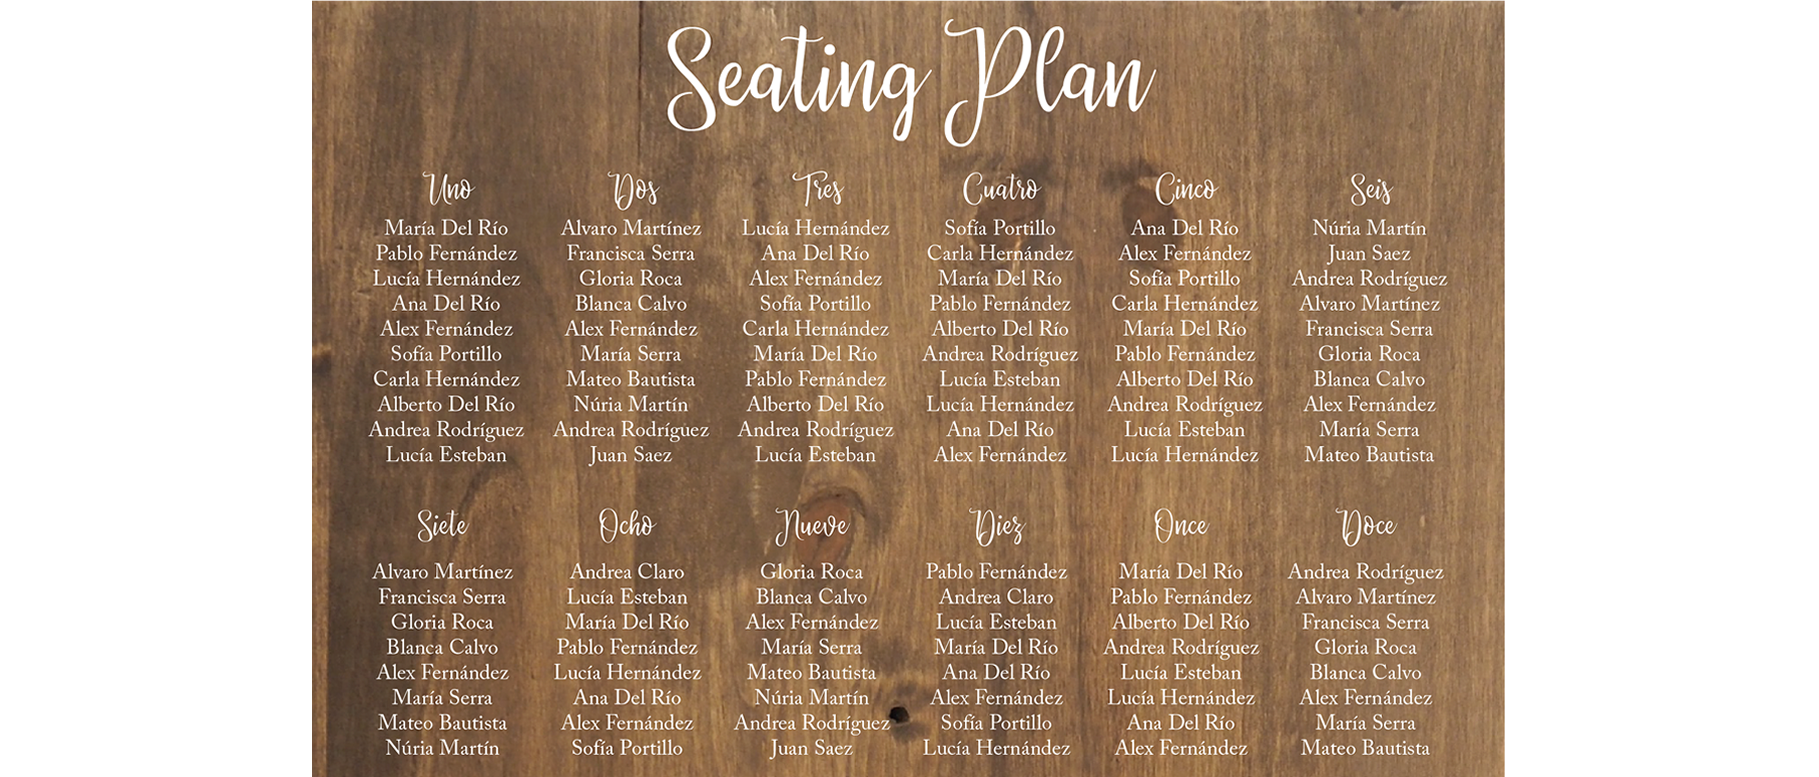 Wooden Seating Plan Barcelona - BCN LETTERS